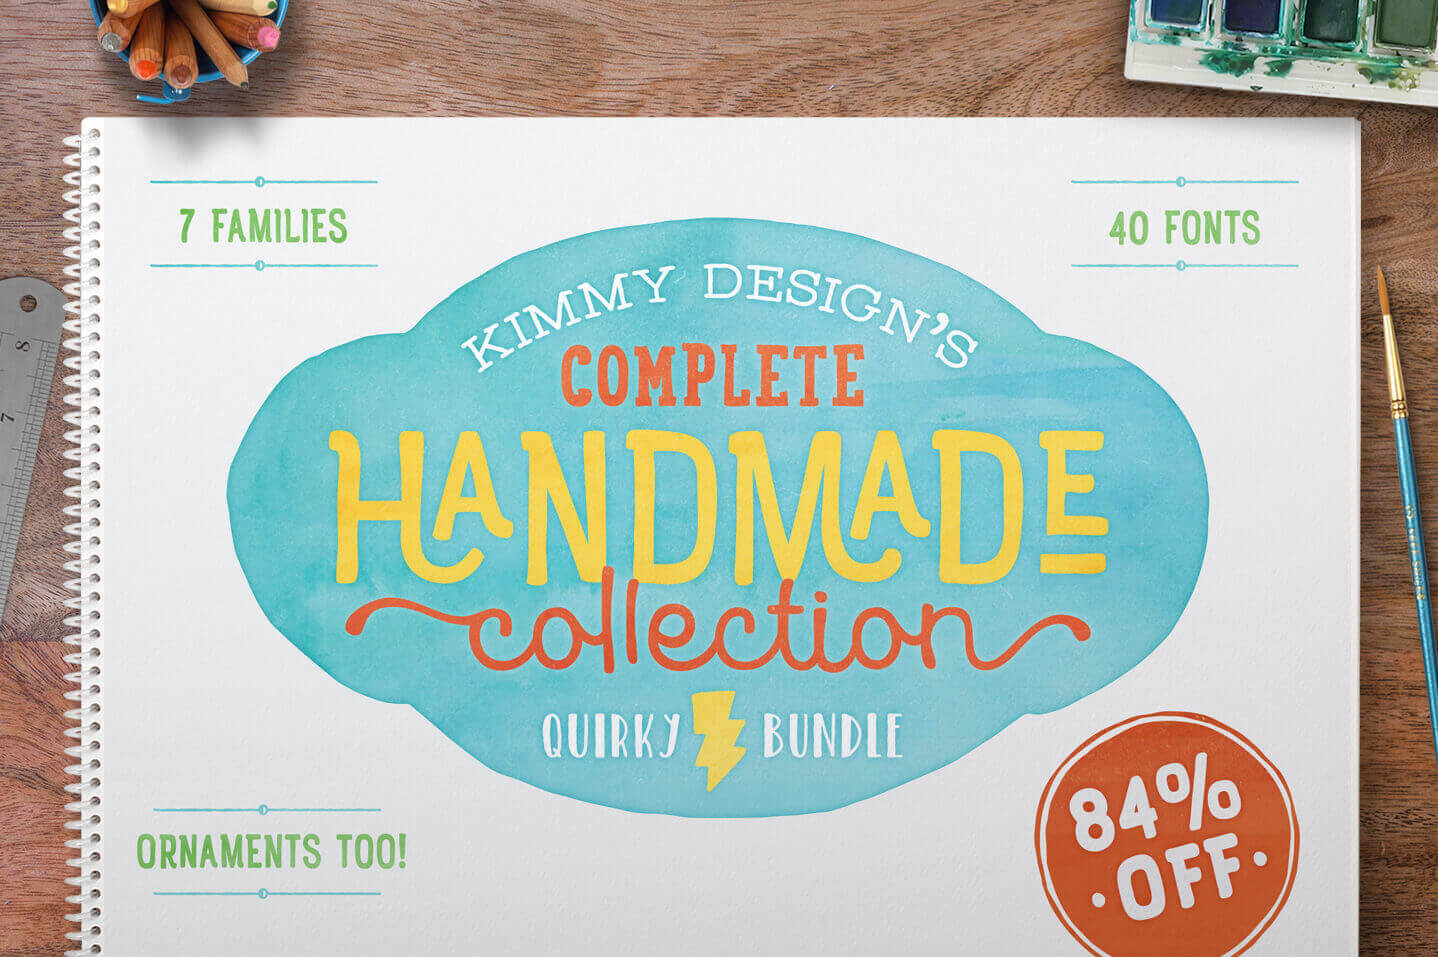 Collection of 40 Unique Handmade Fonts from Kimmy Design – only $17!